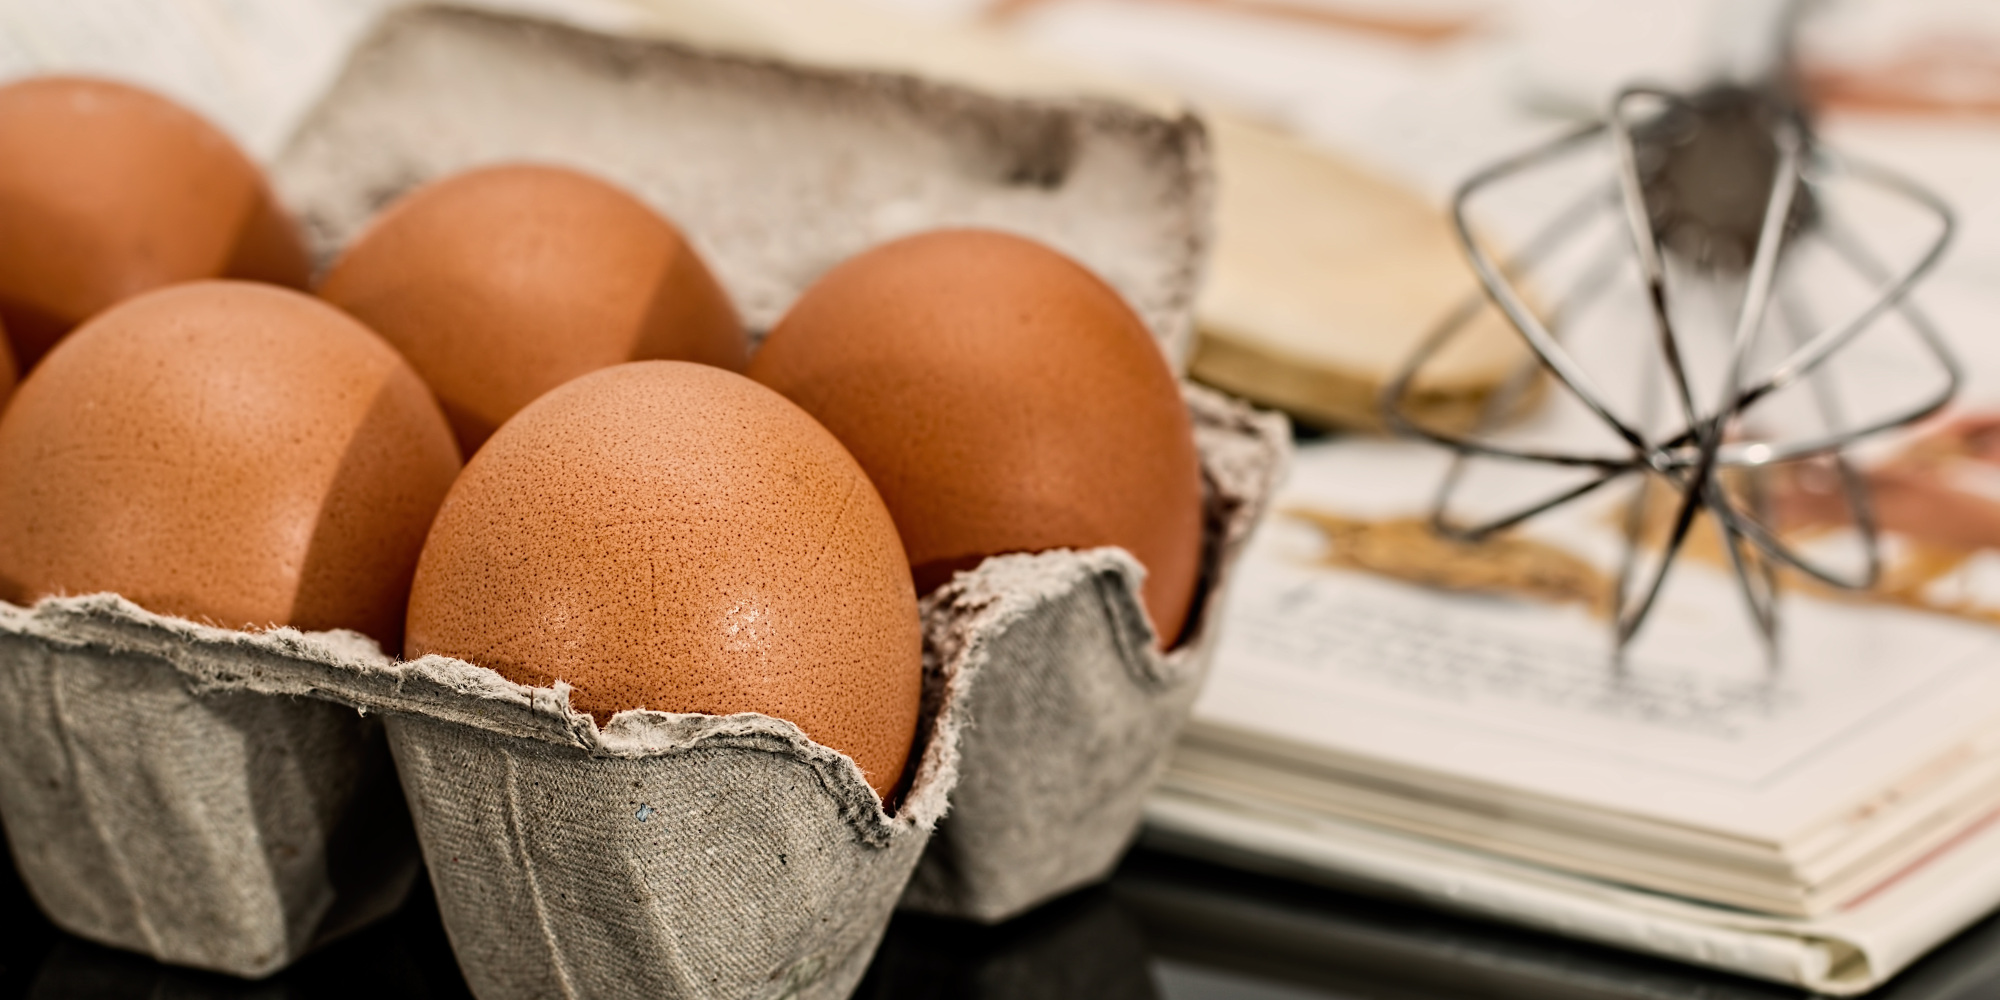 eggs and a whisk are placed near recipes on paper